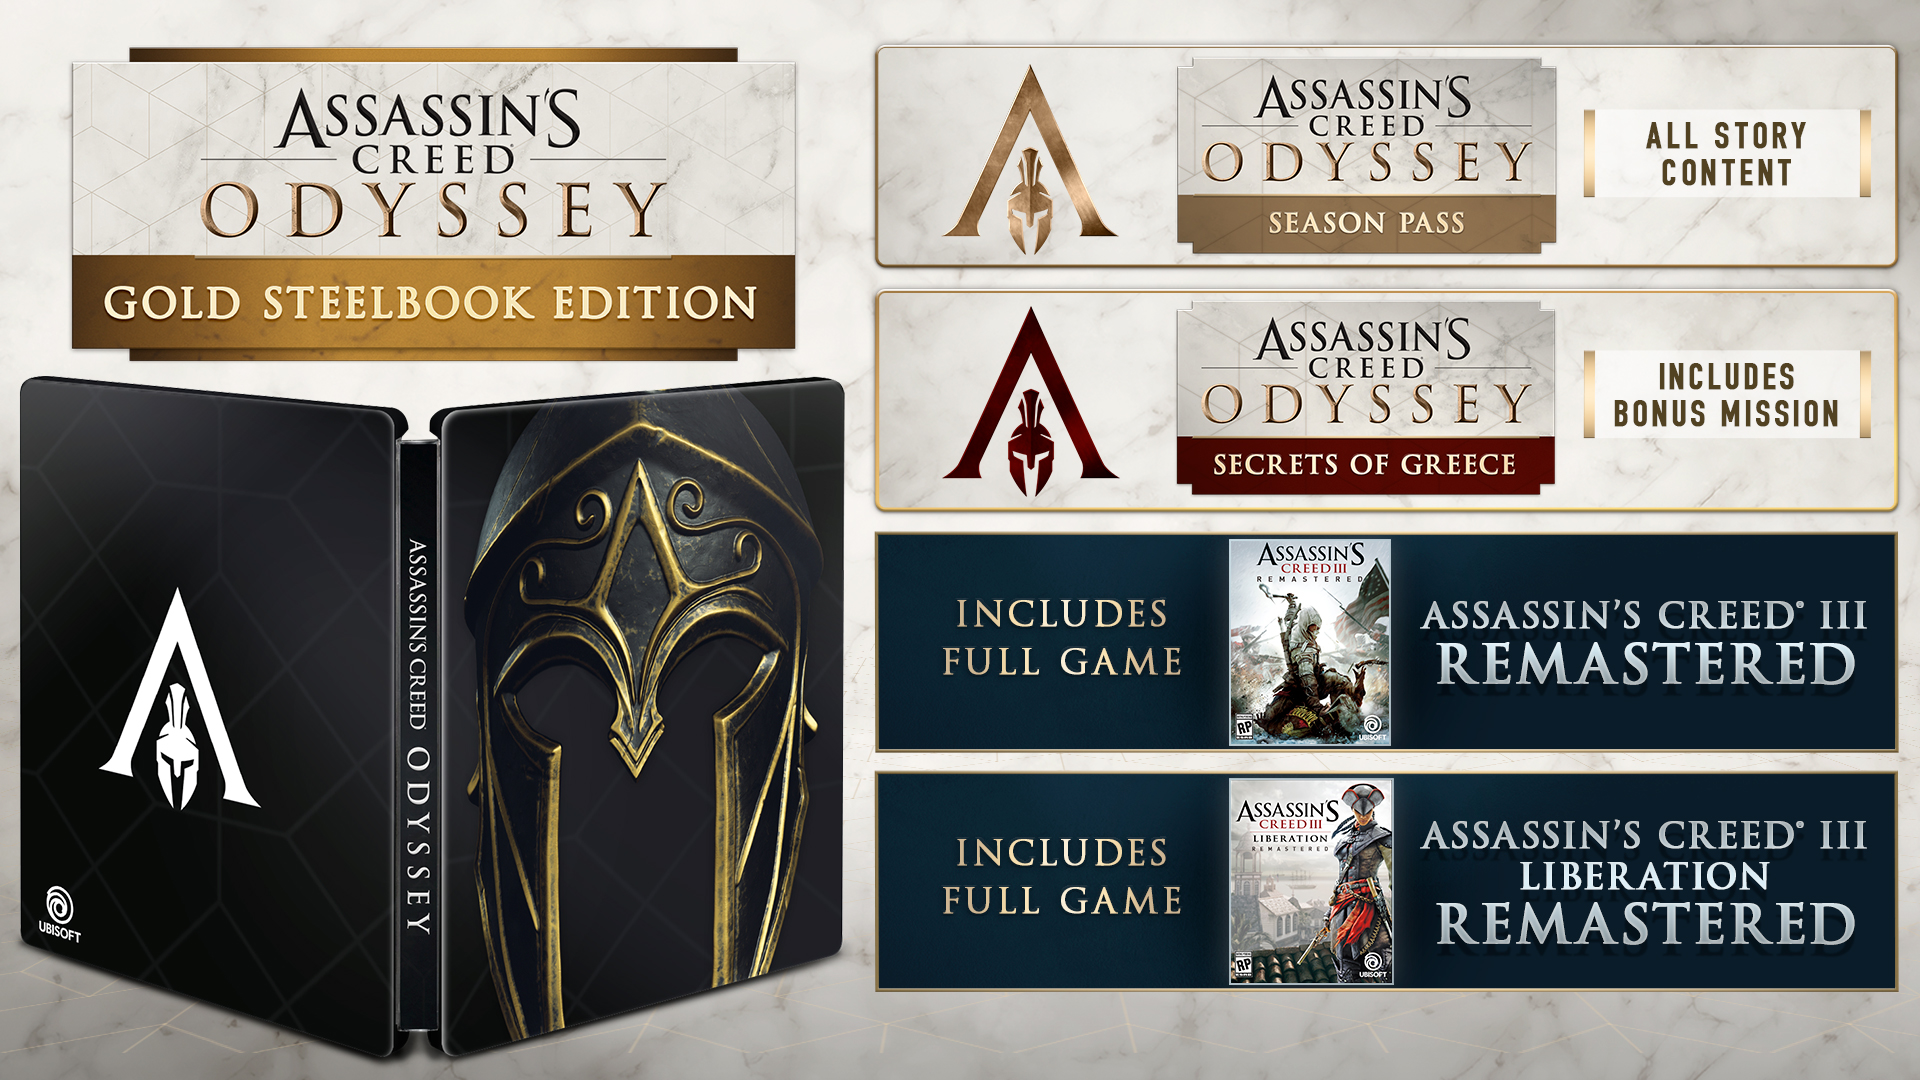 assassins creed odyssey gold editionfull unlocked - HD 1920×1080